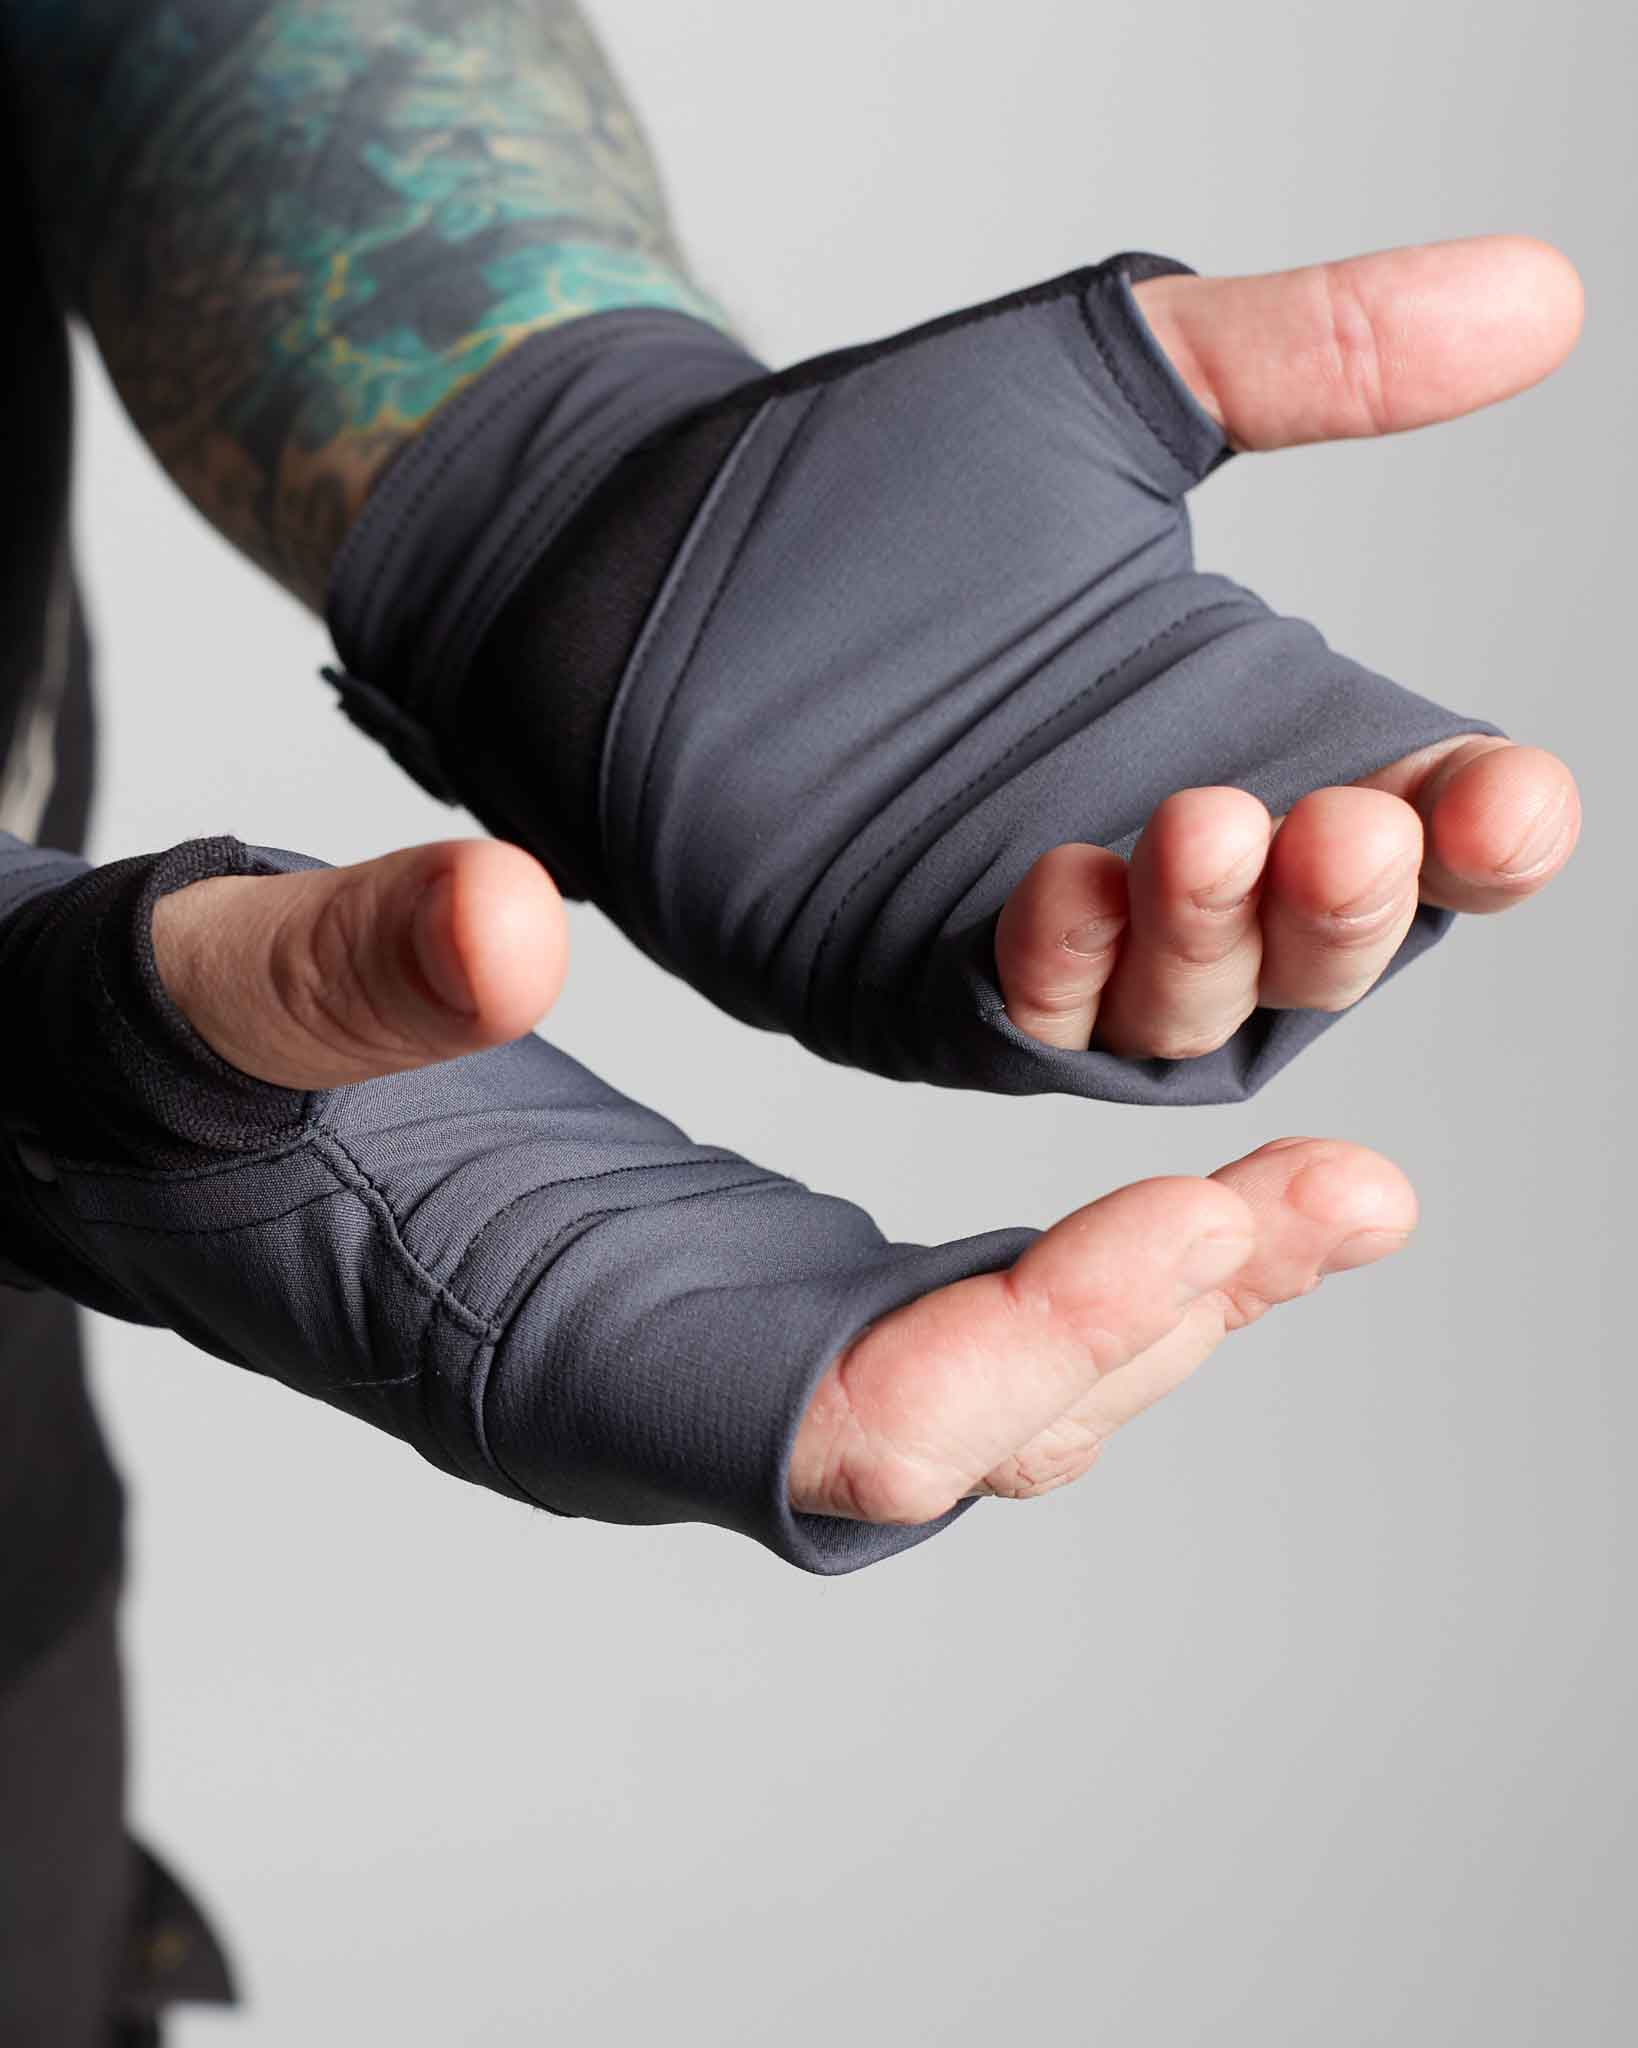 Handmade futuristic gloves made with stretch cordura